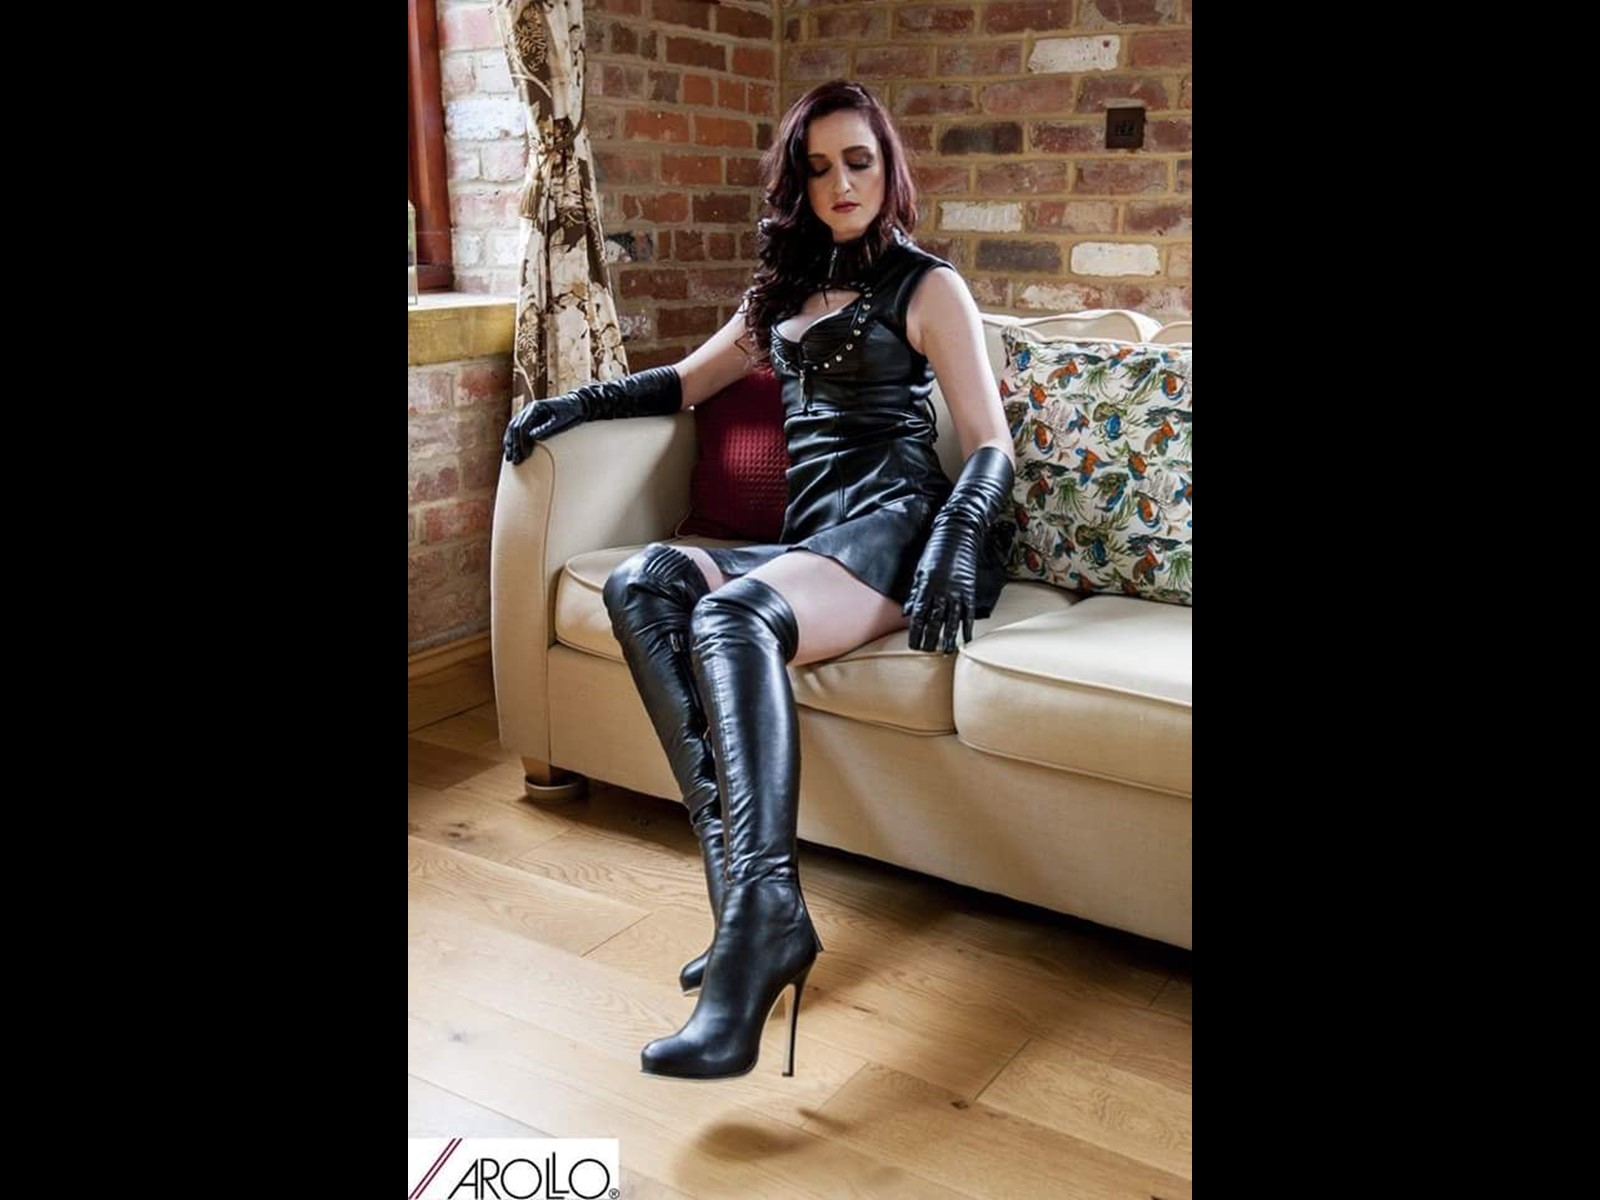 Mistress Vivienne of Derby posing in The Summerhouse in Arollo Leather Boots - Leather Dress, Gloves, Jacket